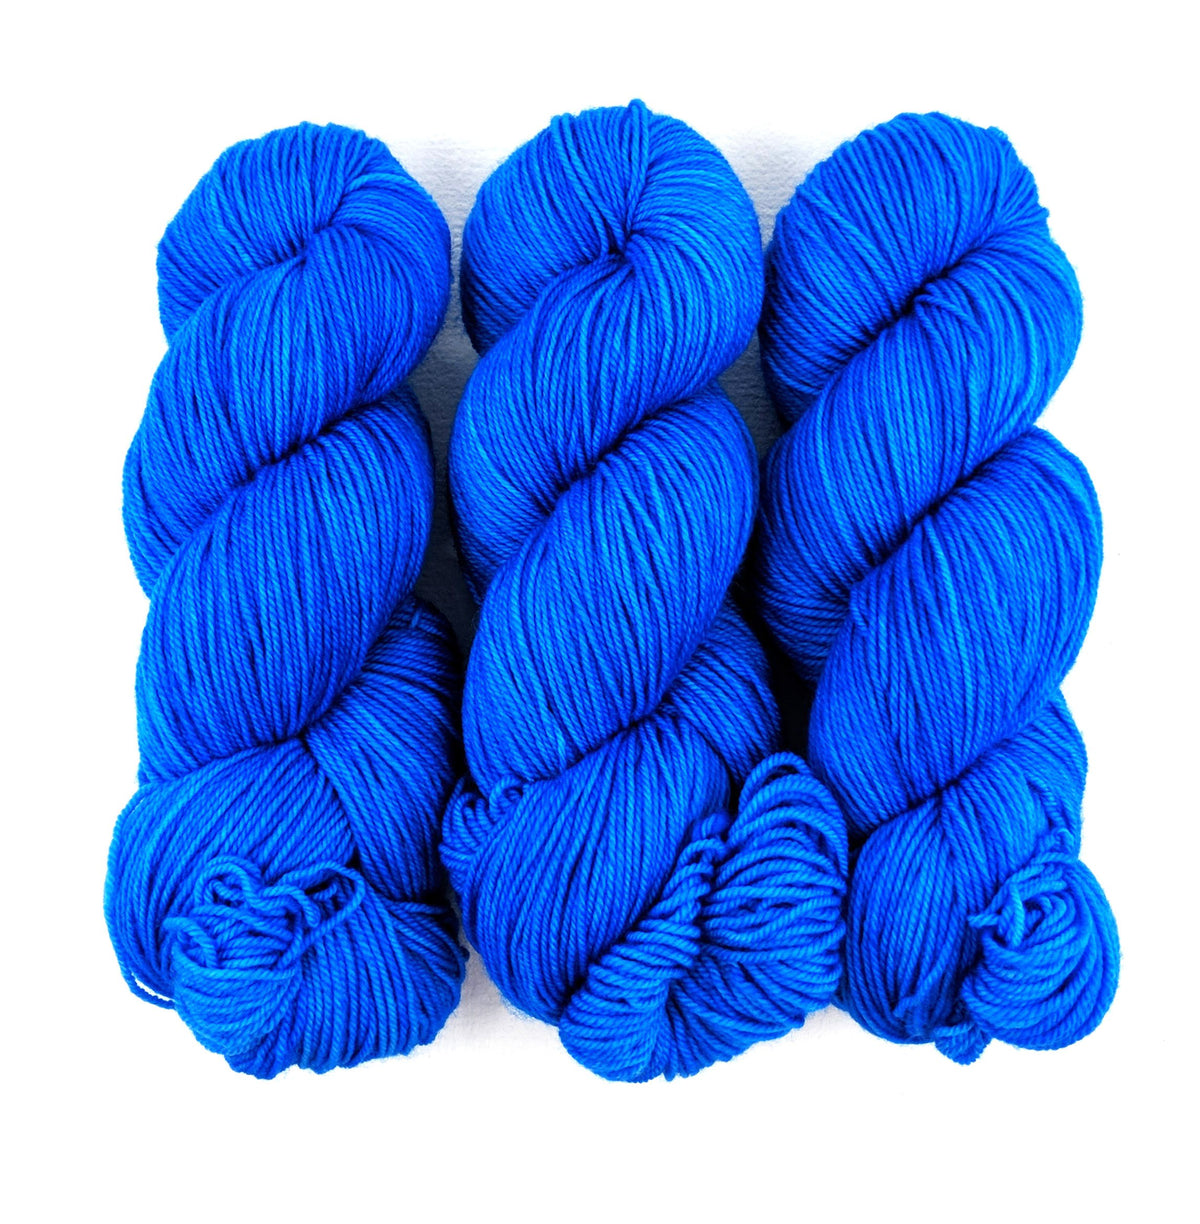 Cerulean - Little Nettle Soft Fingering - Dyed Stock